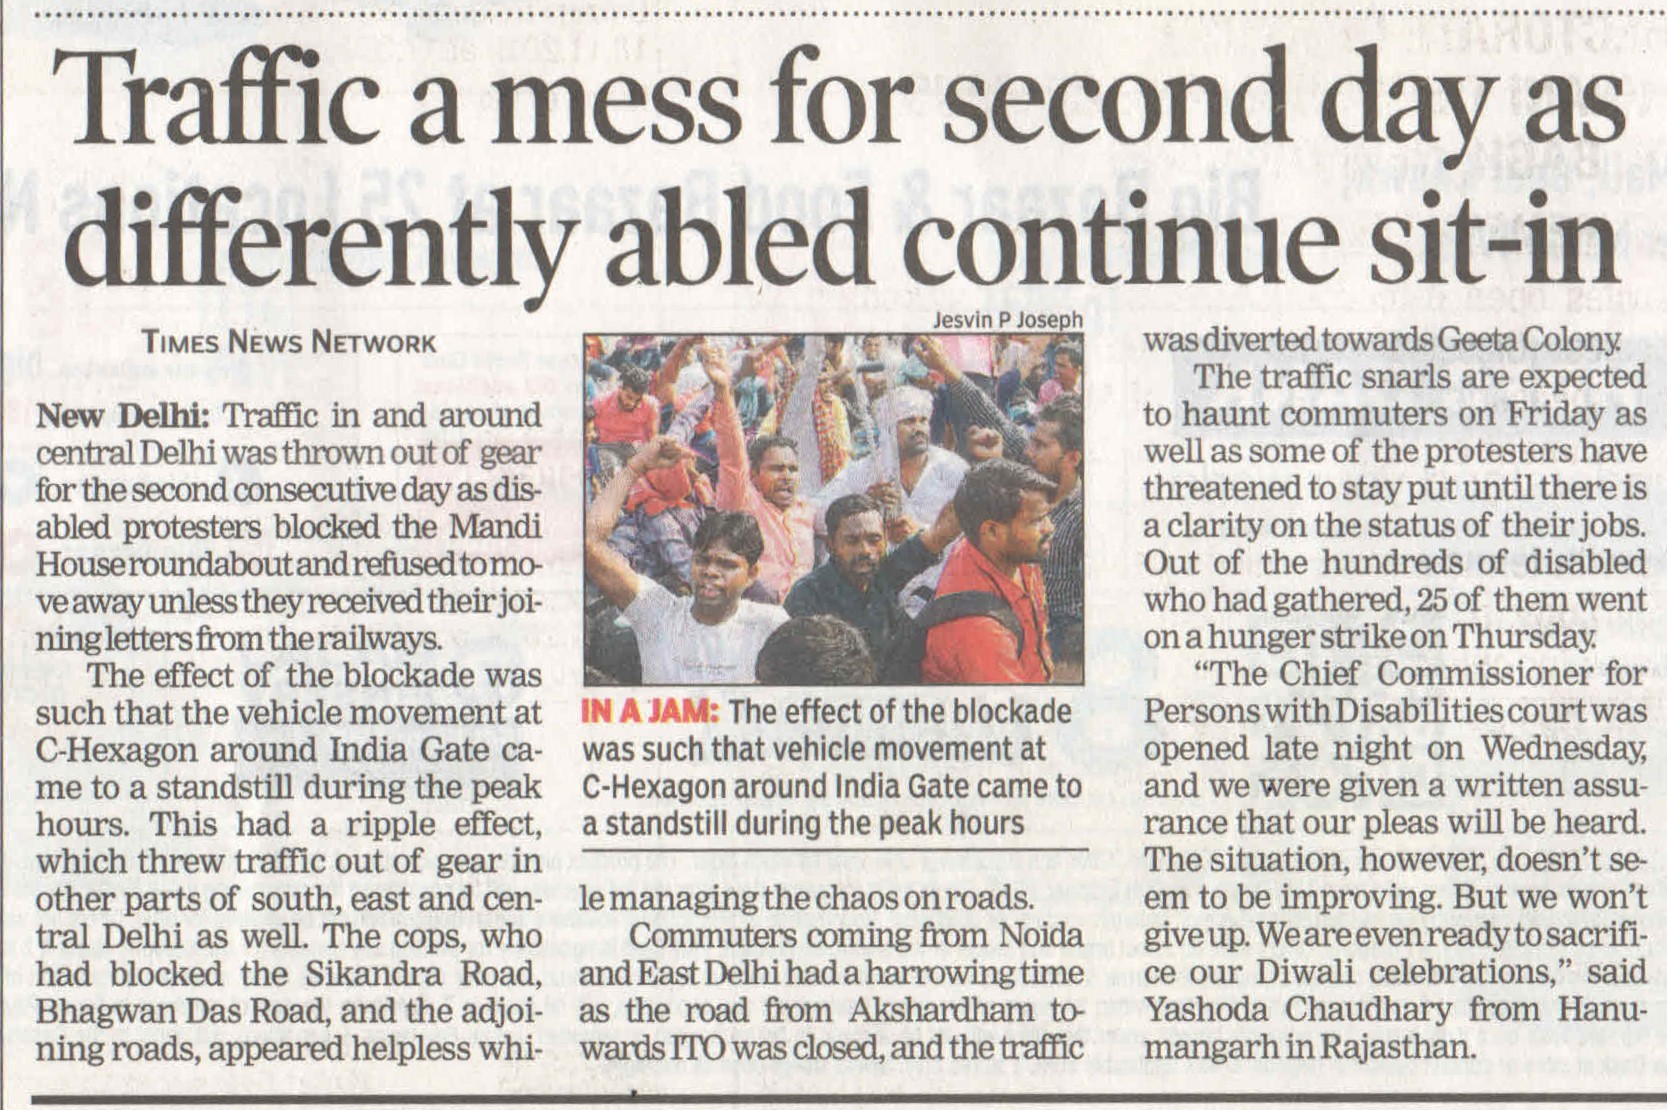 Traffic a mess for second day as differently abled continue sit-in